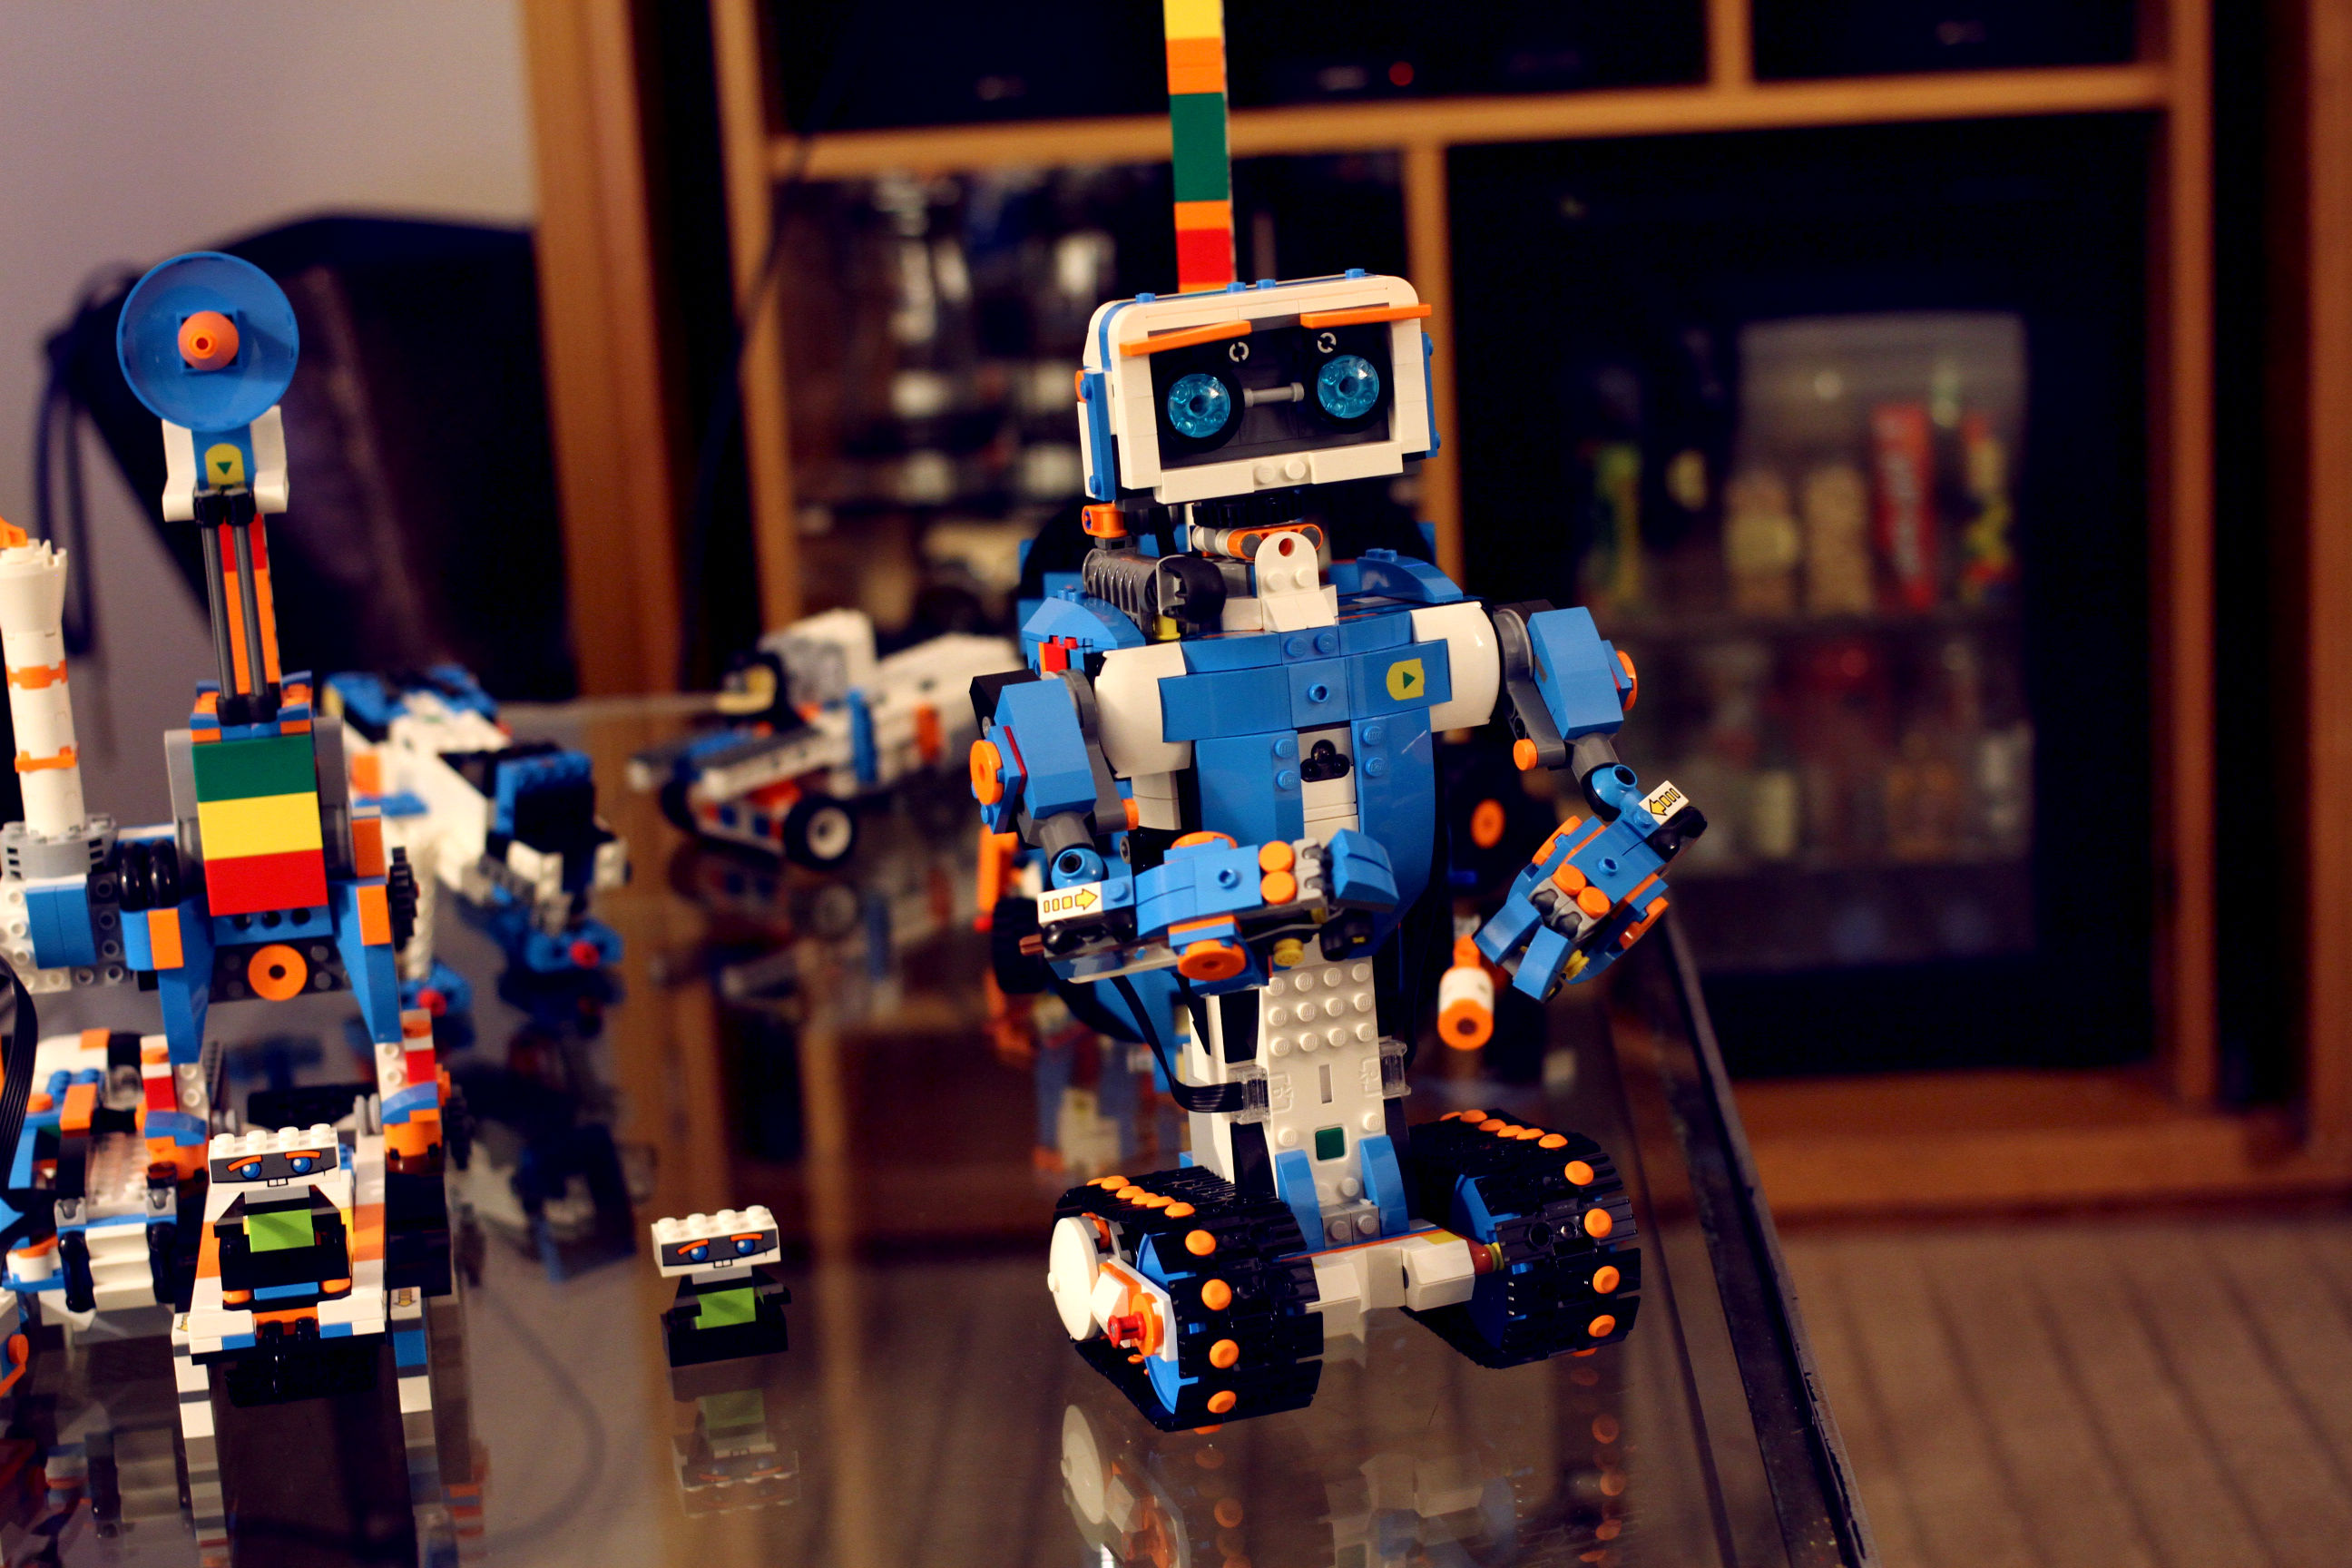 Lego targets pre-Mindstorms minds with its Boost ...